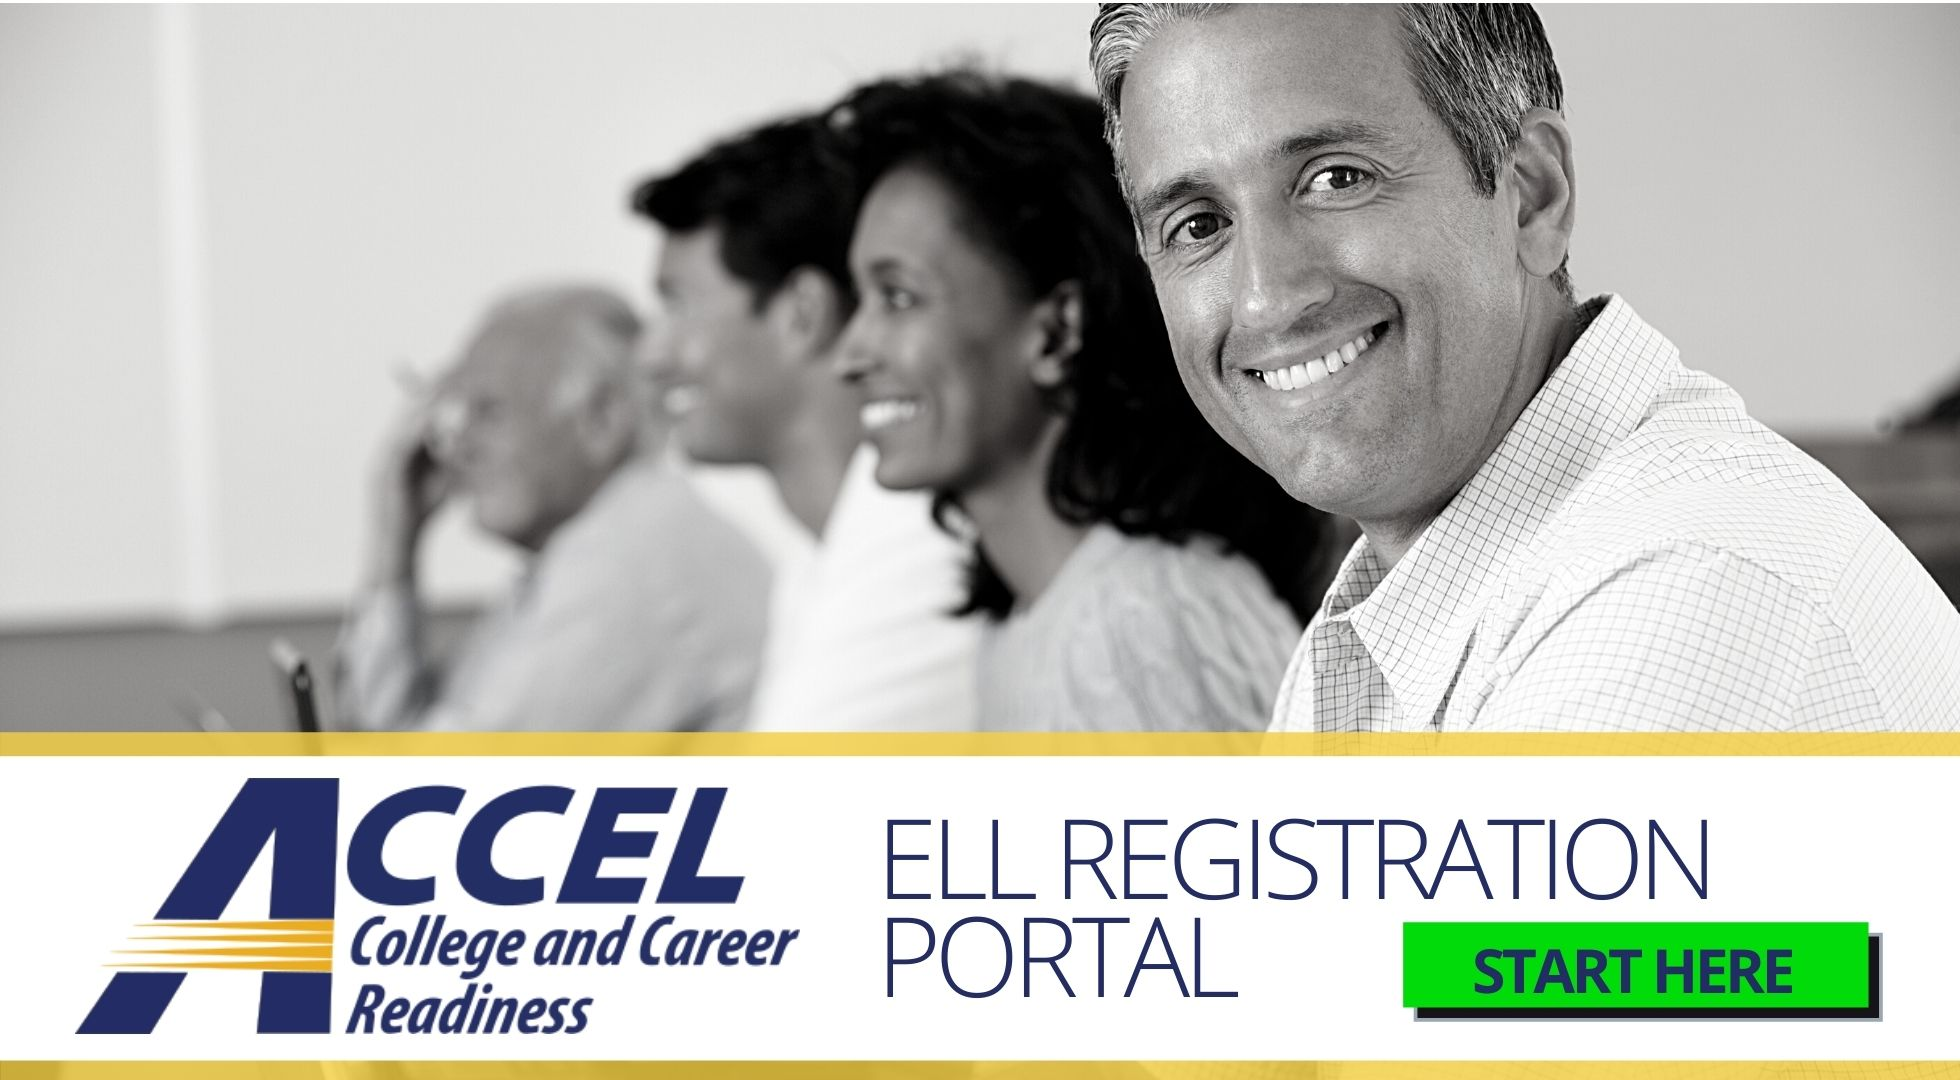 ELL Registration Portal